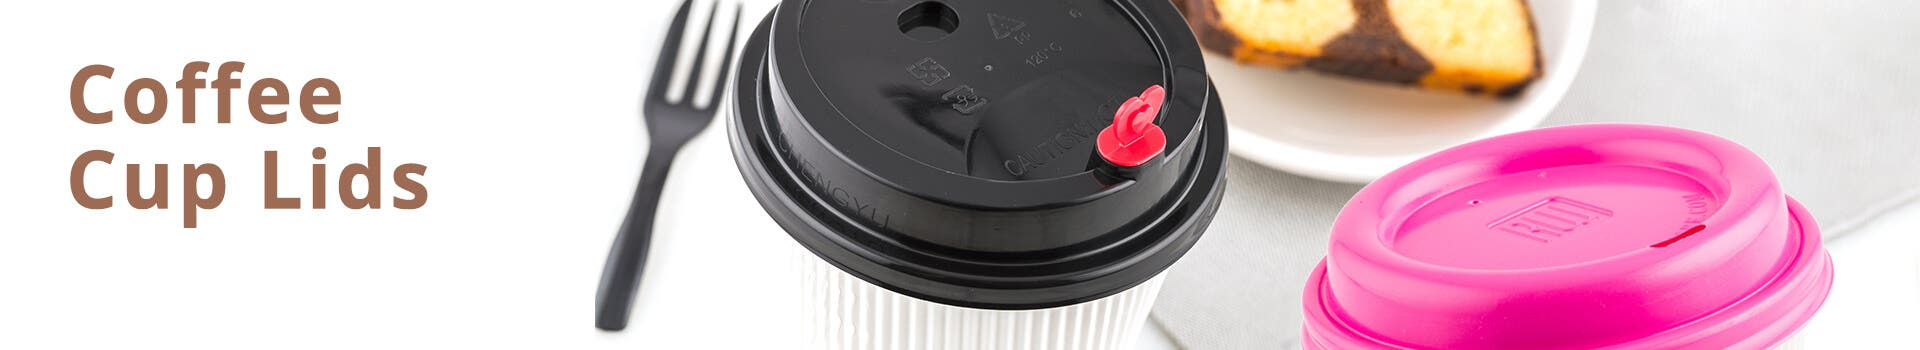 Black Coffee Cup Lids